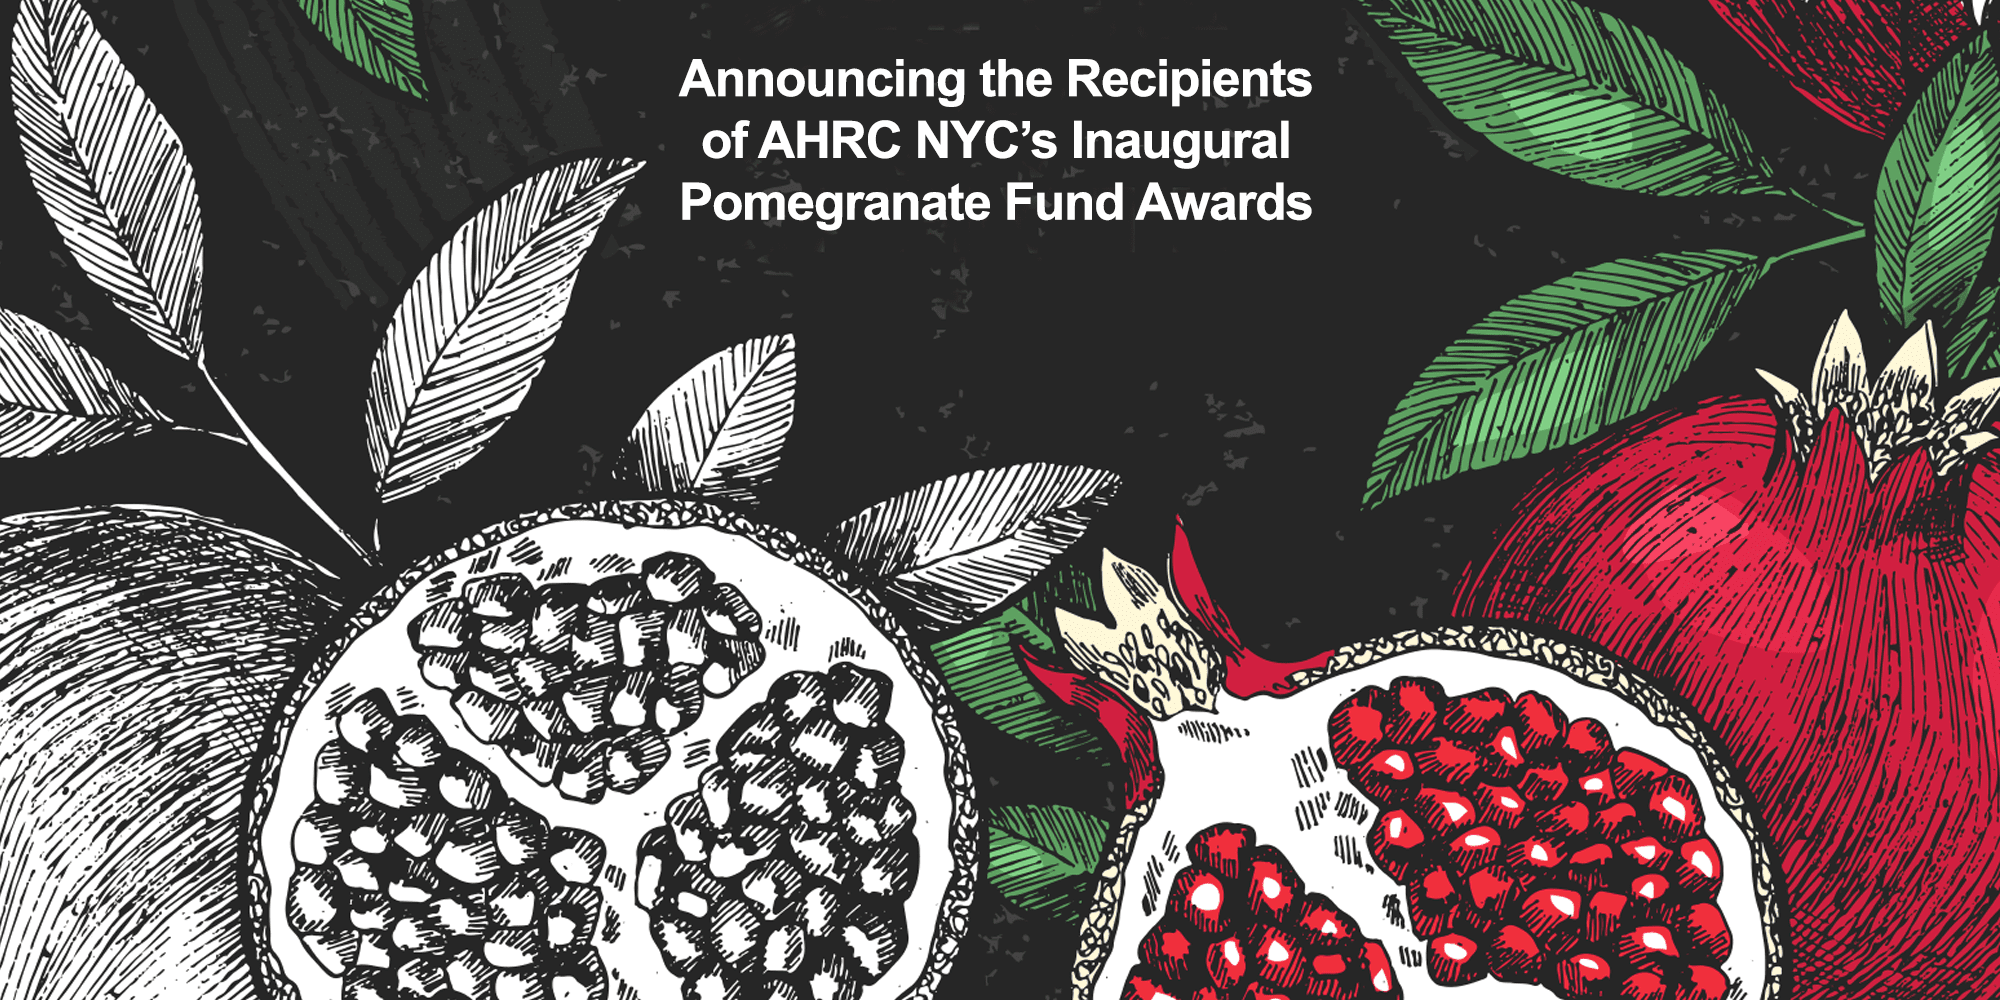 Announcing AHRC NYC's Inaugural Pomegranate Fund Awards